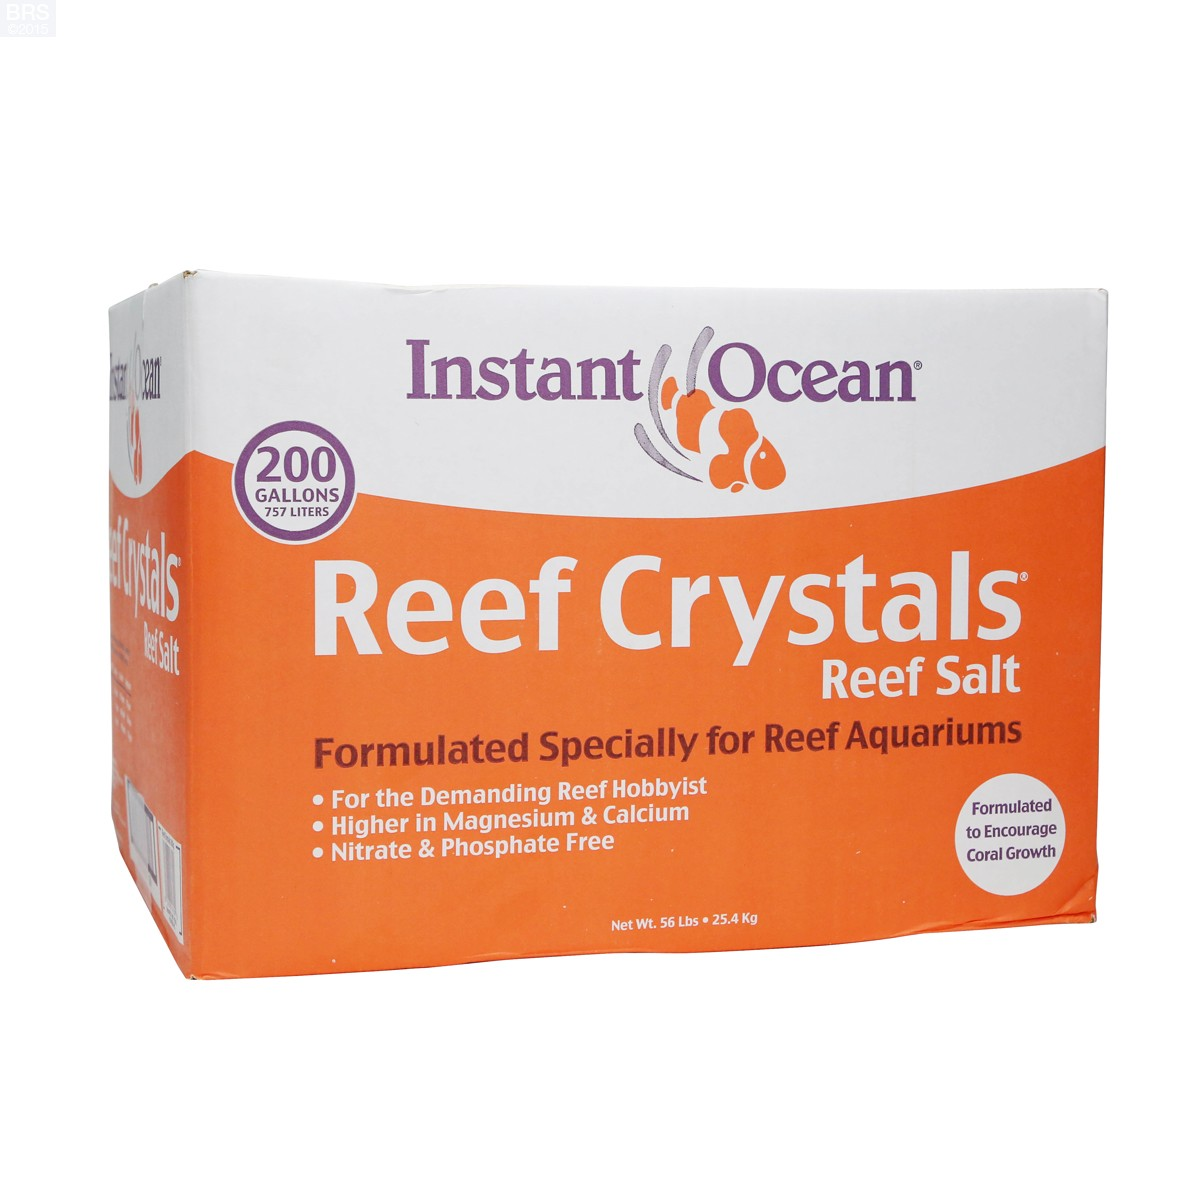 instant ocean reef crystals instructions